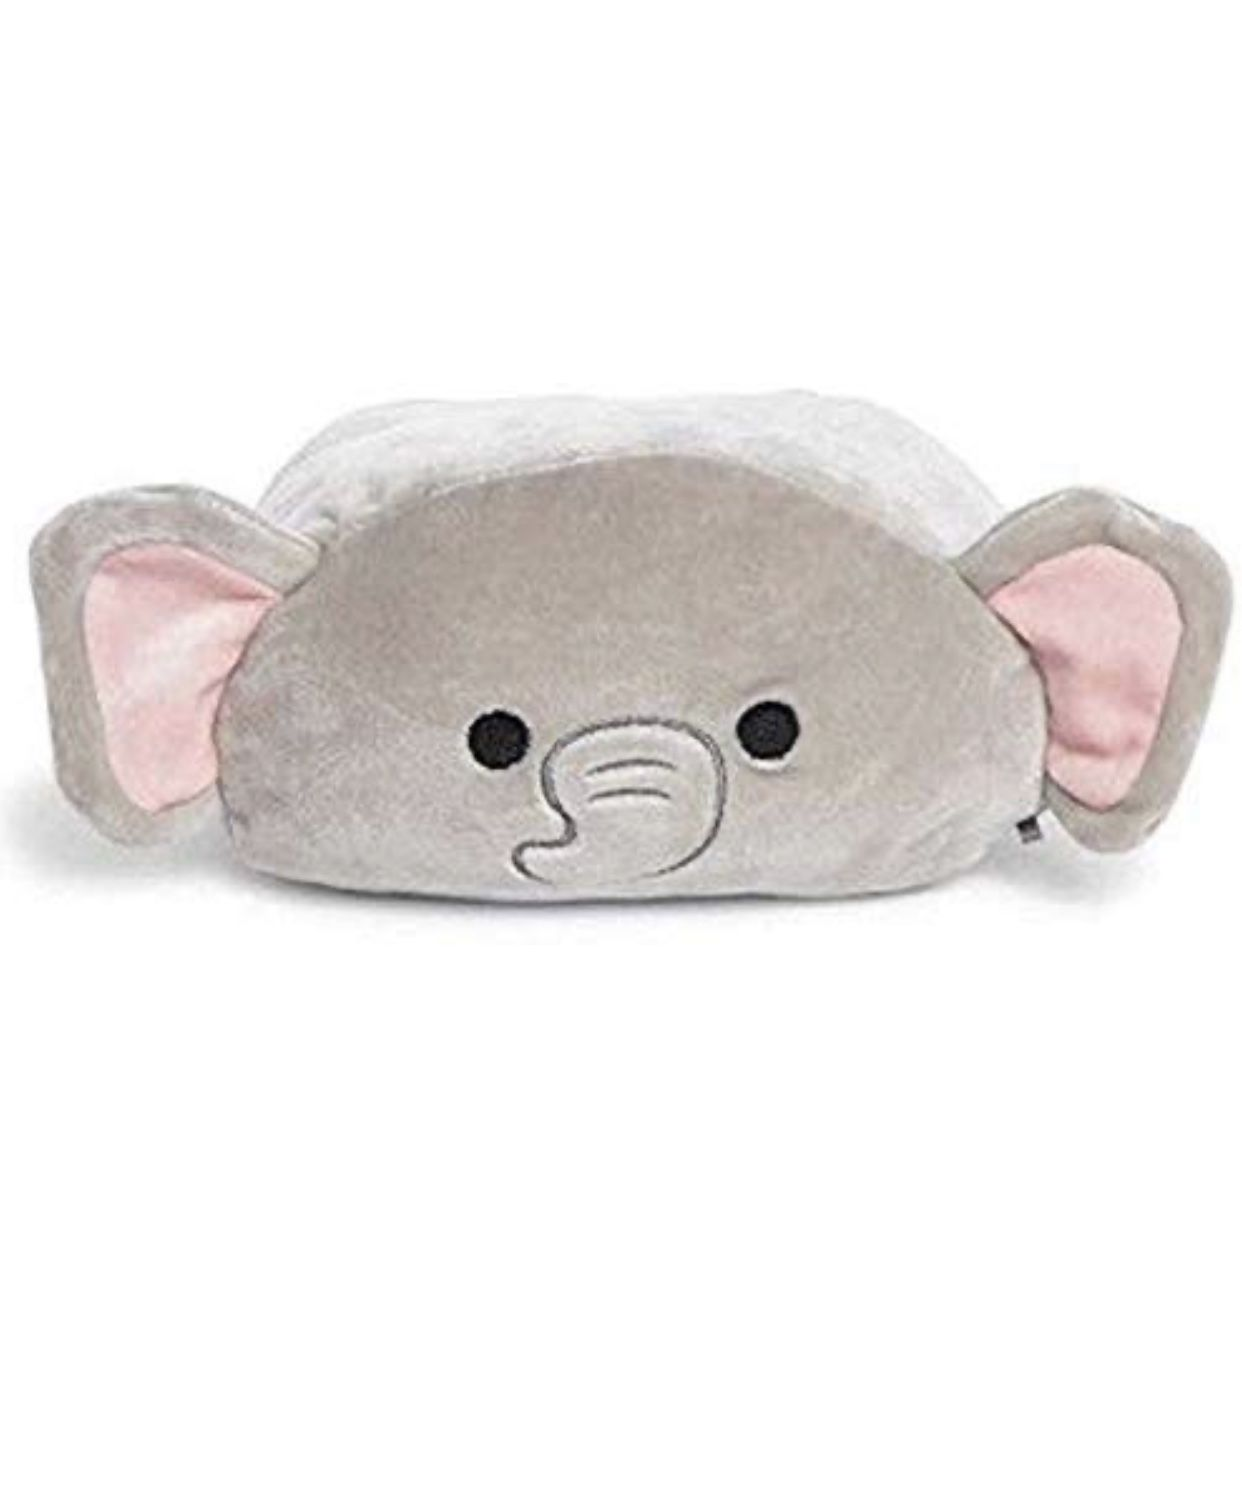 Squishmallow 8 Inch Mila The Stackable Grey Elephant Grey Elephant Soft Pillows Plush Pillows